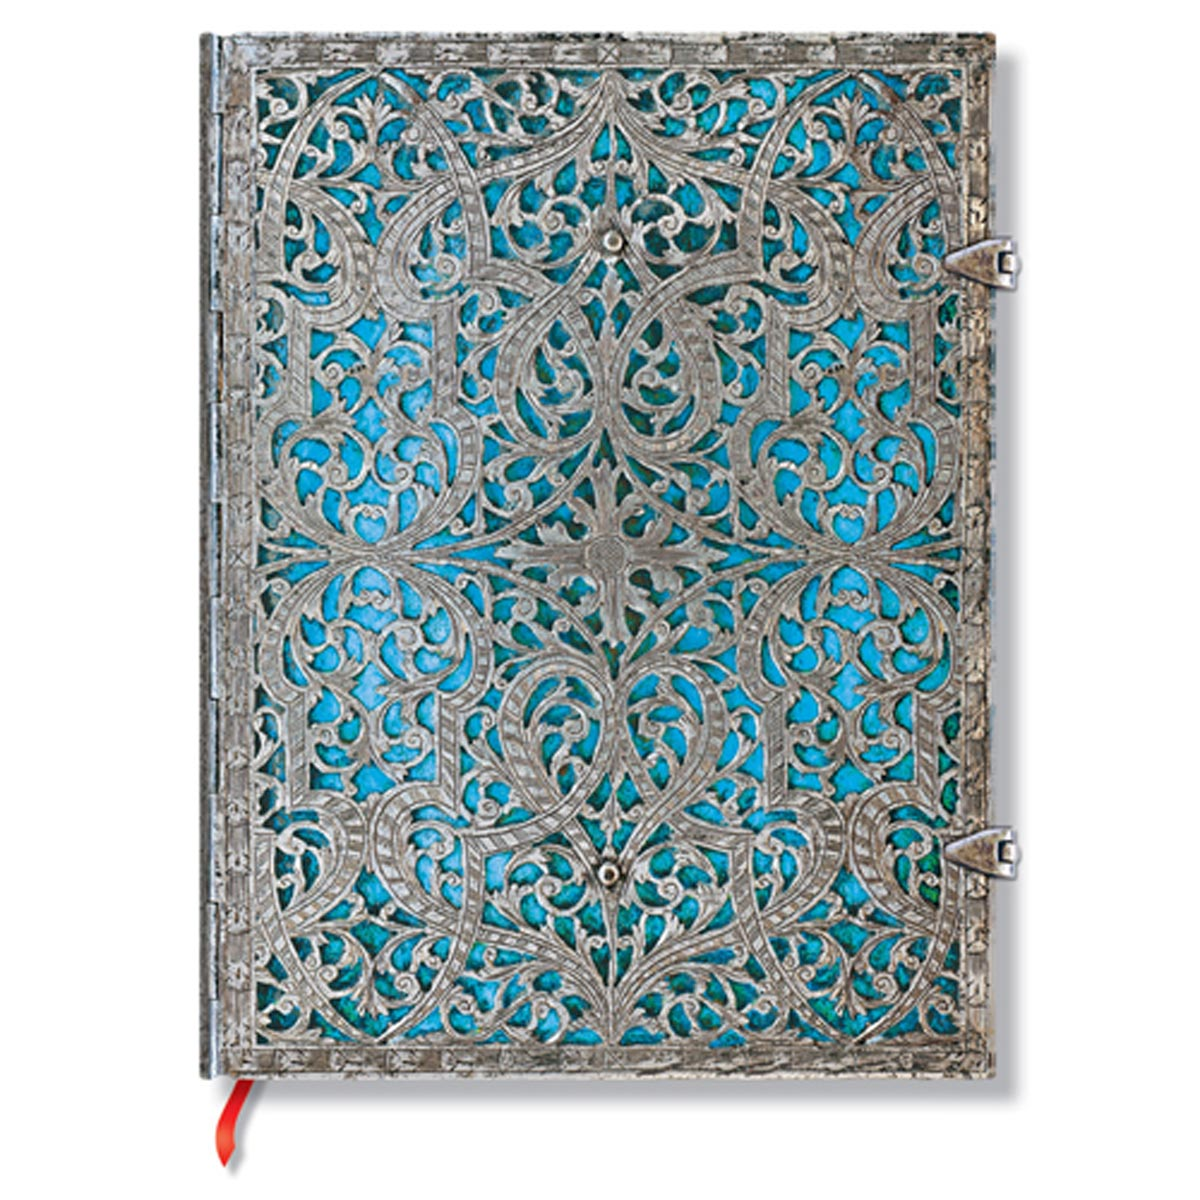 Paperblanks Silver Filigree Maya Blue 7x9 In Ultra lined Journal